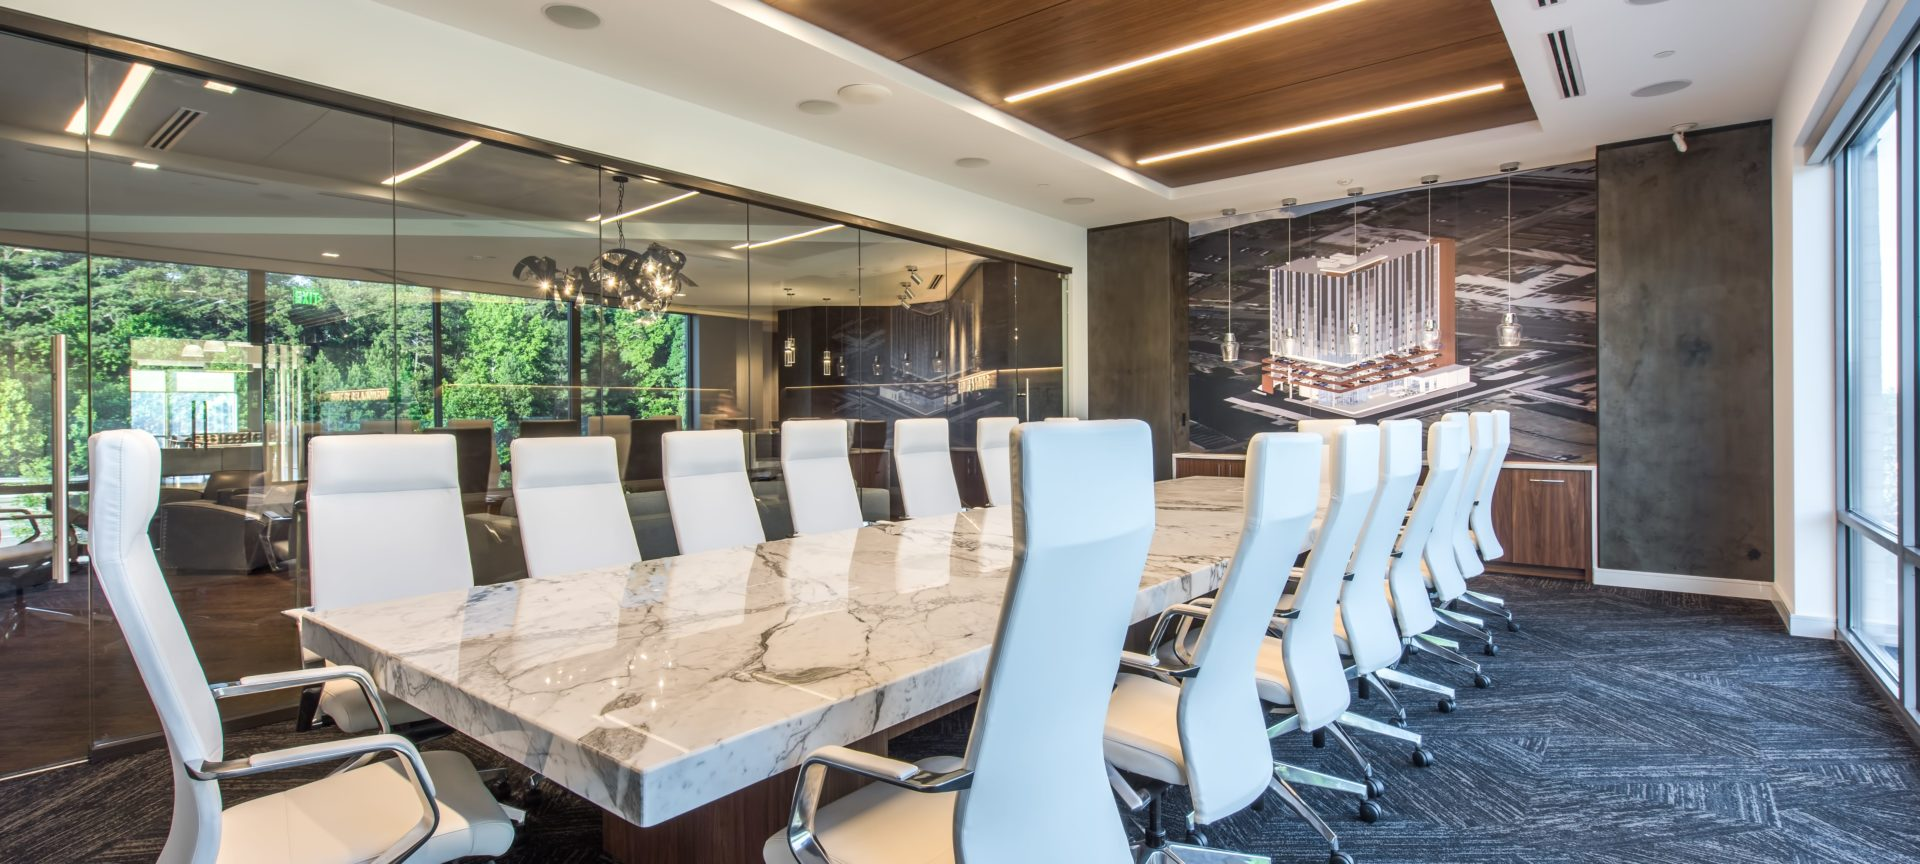 Luxury Marble Conference Table at Reeves Young